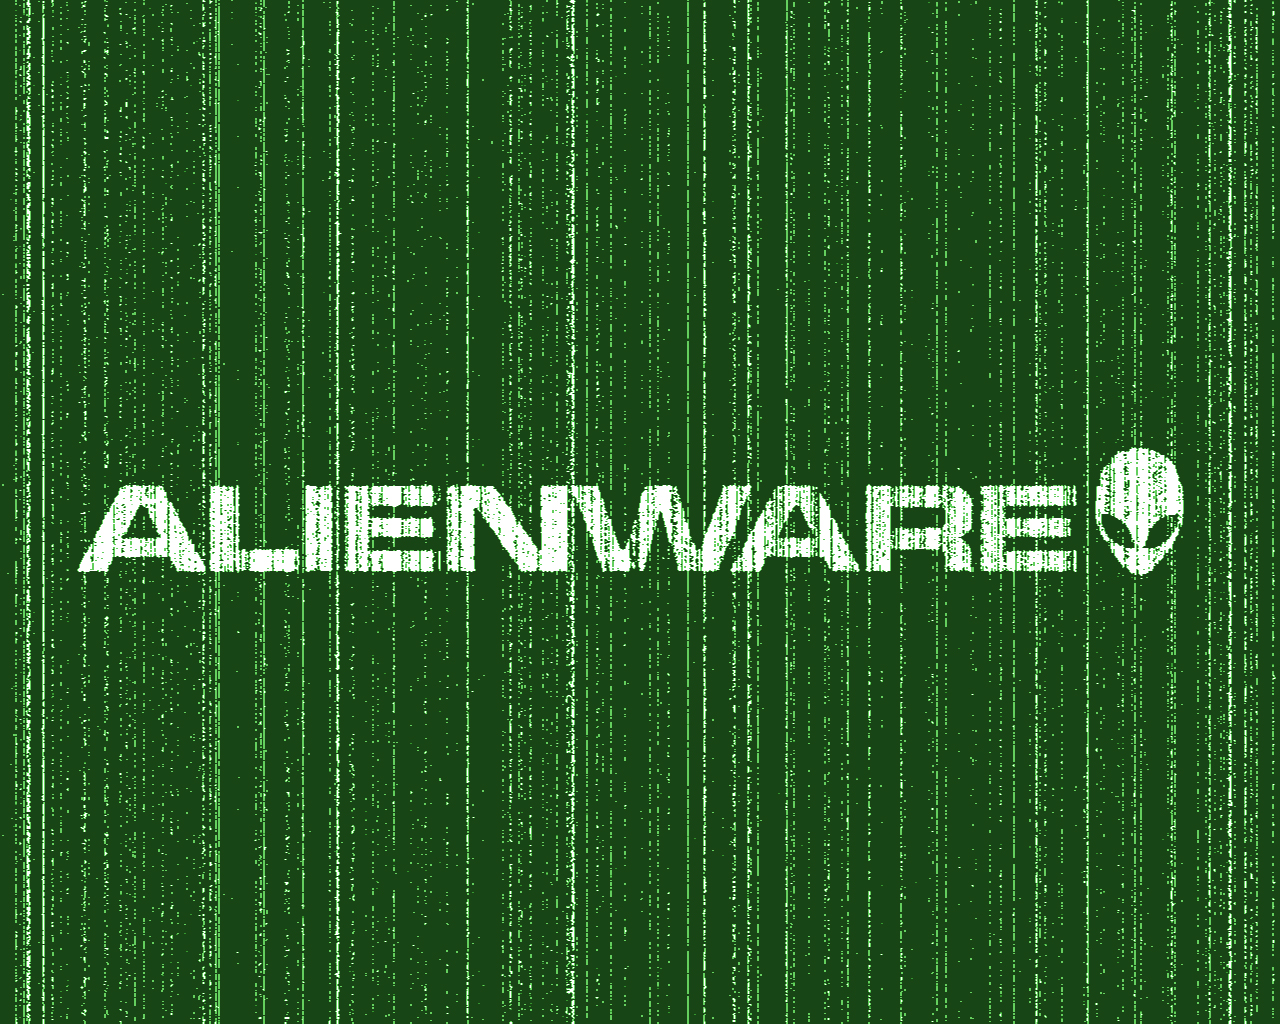 Linux Animated Wallpaper Alienware Matrix Wallpapers Alienware Matrix Stock Photos